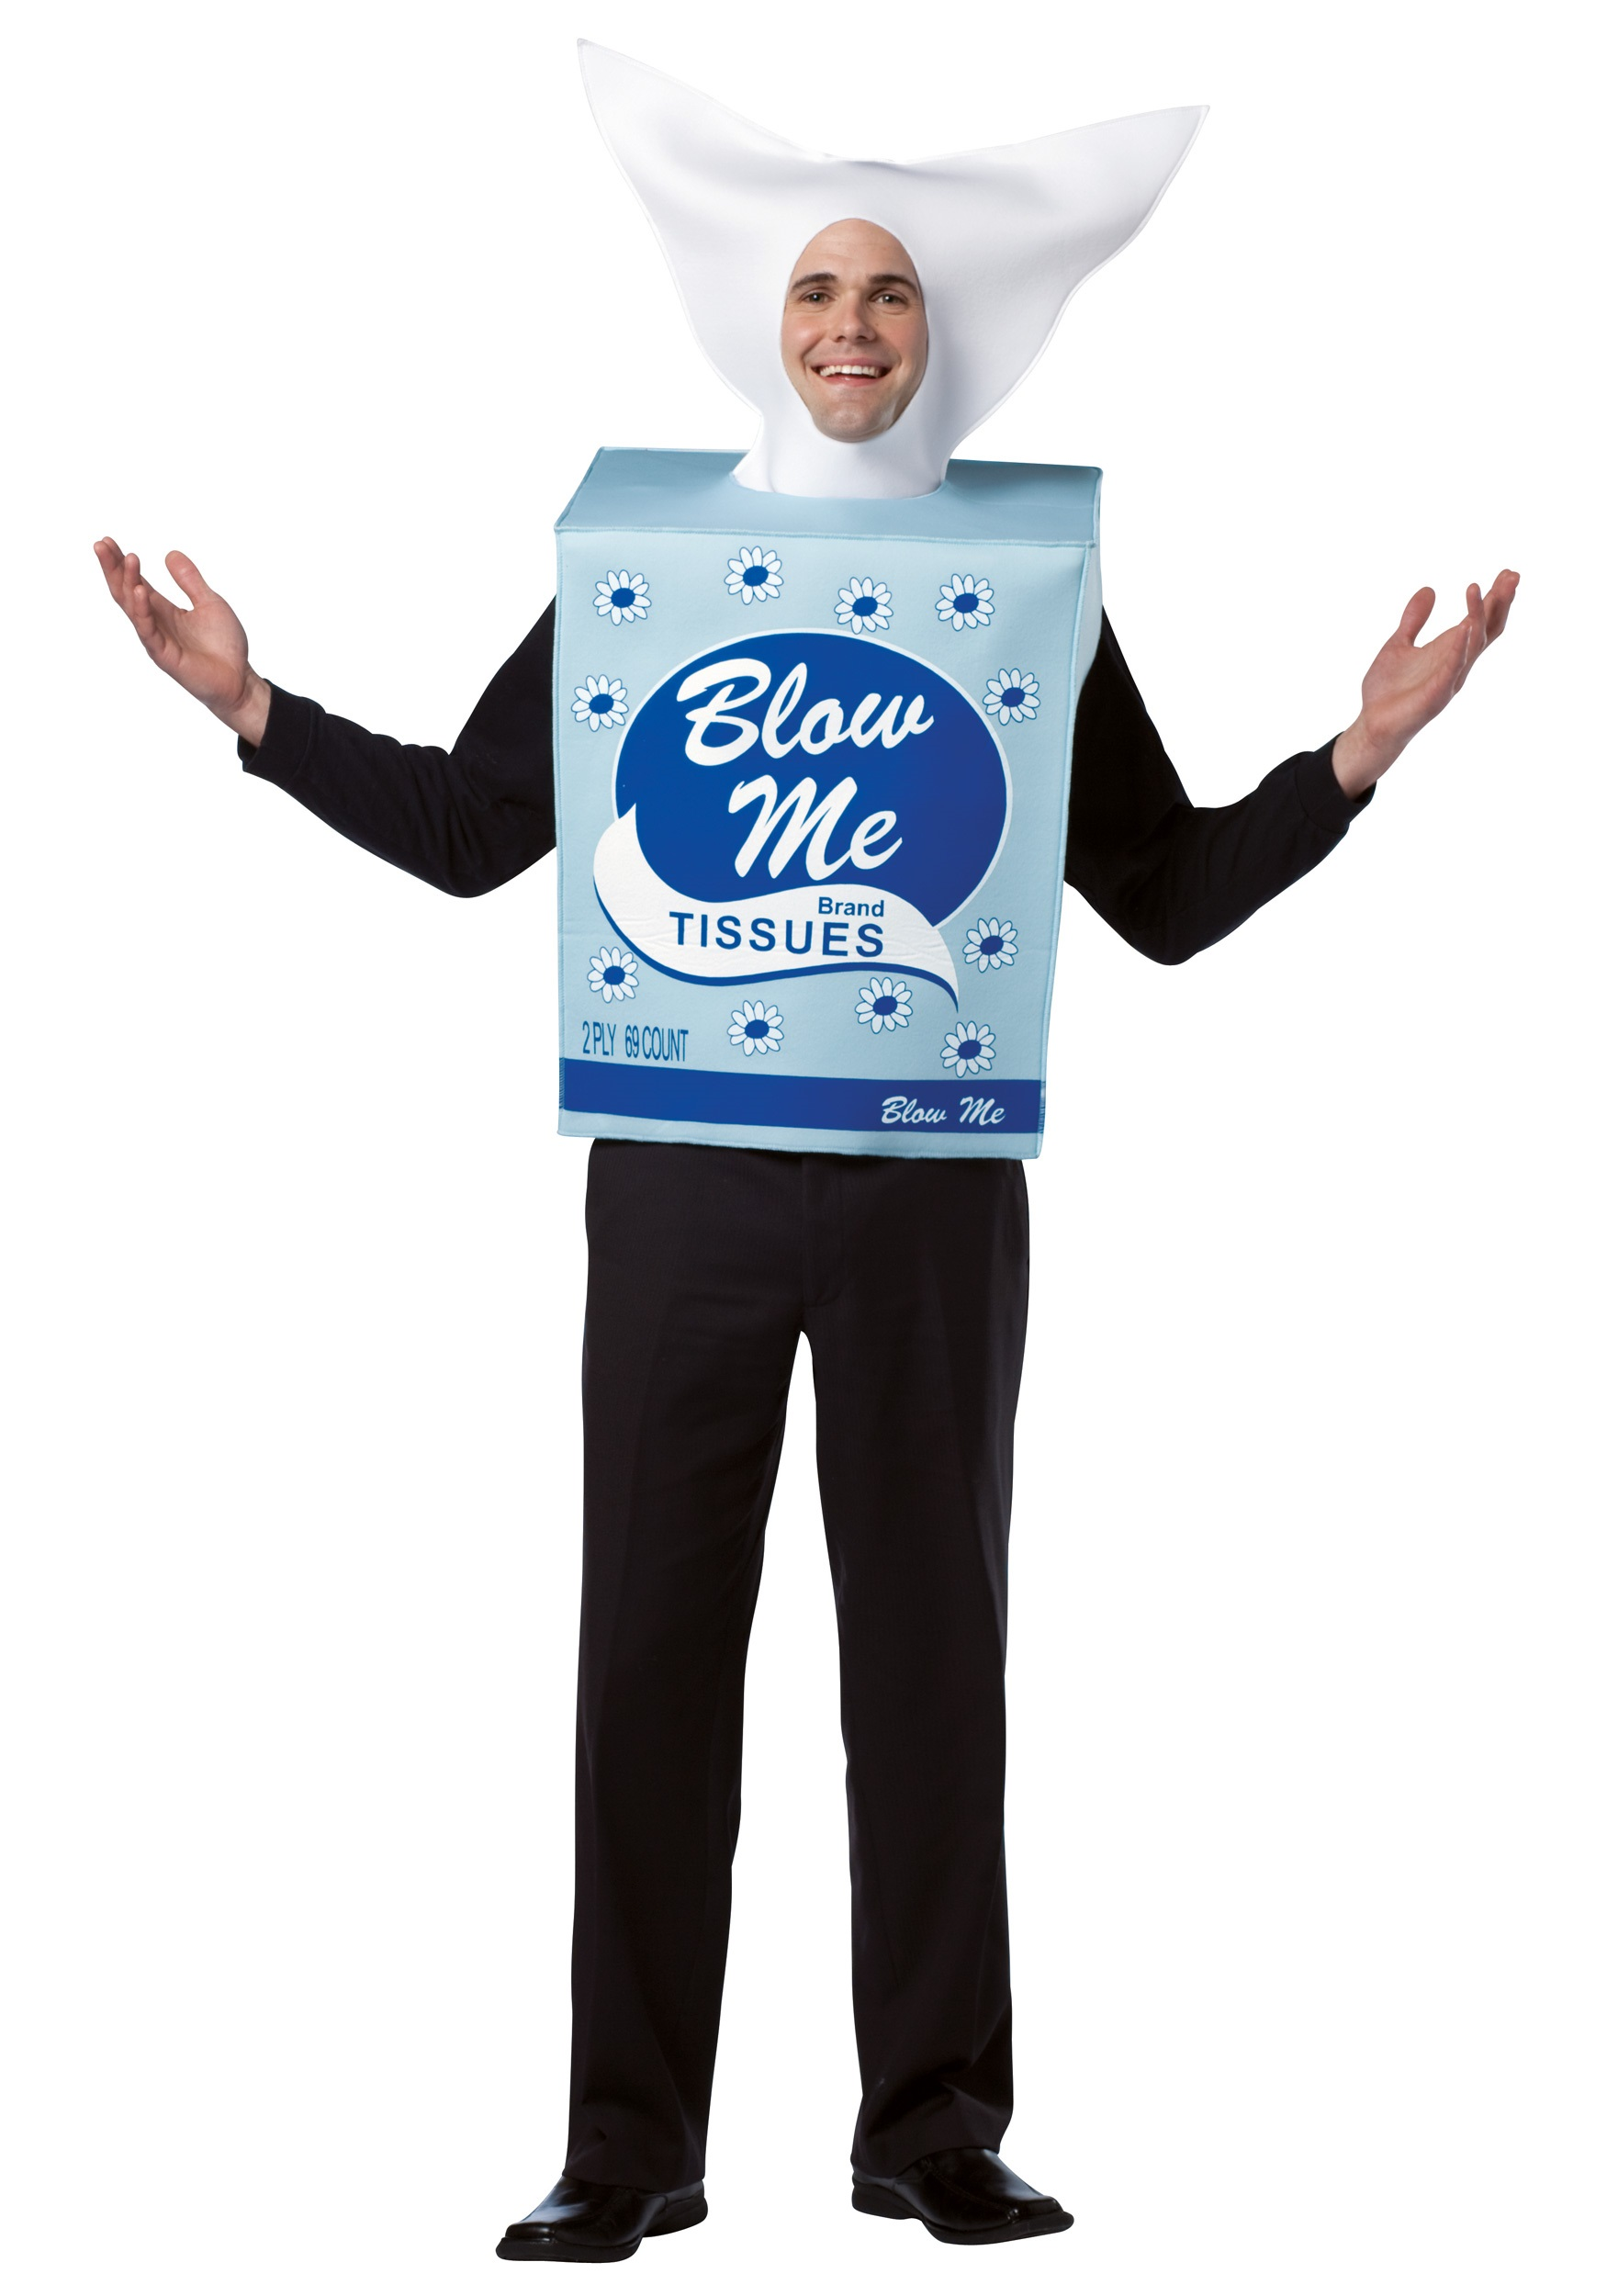 blow-me-tissues-hallowen-costume